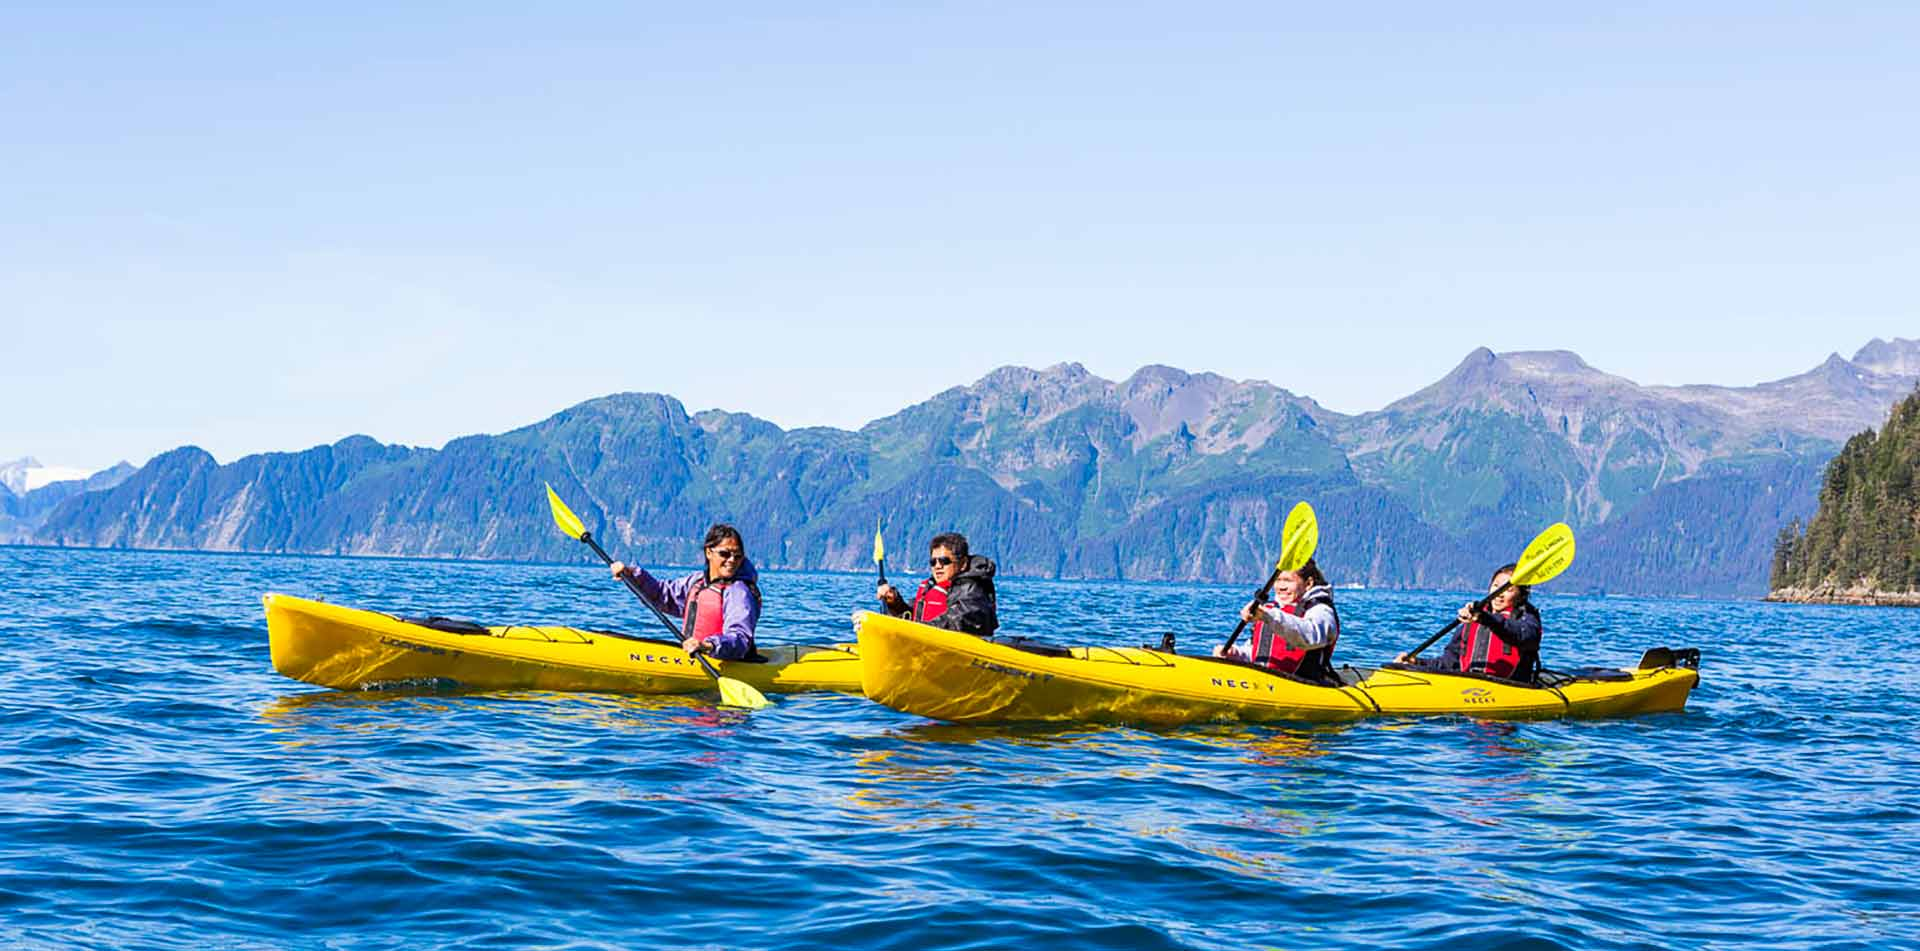 Family Kayaking in Humpy Cove, Alaska